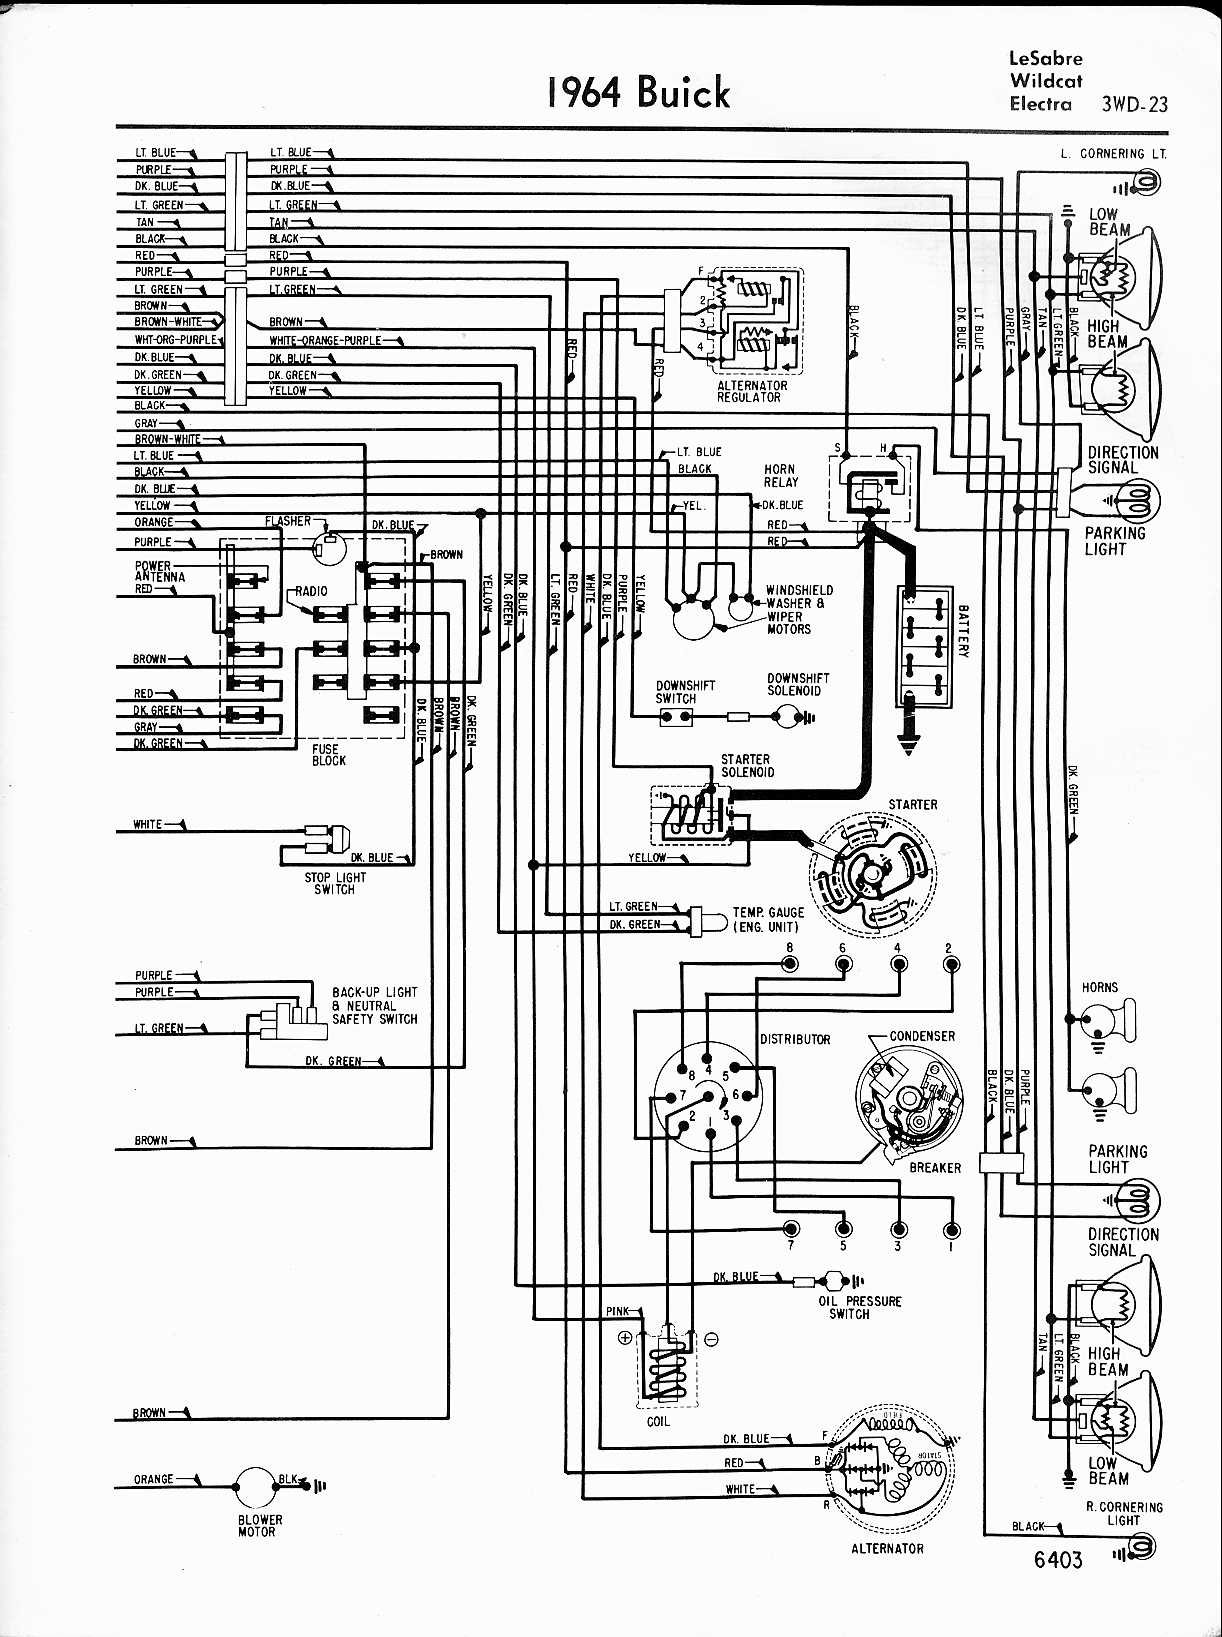 Pleasant Alternator Wiring Diagram 1957 Online Wiring Diagram Wiring Cloud Staixaidewilluminateatxorg